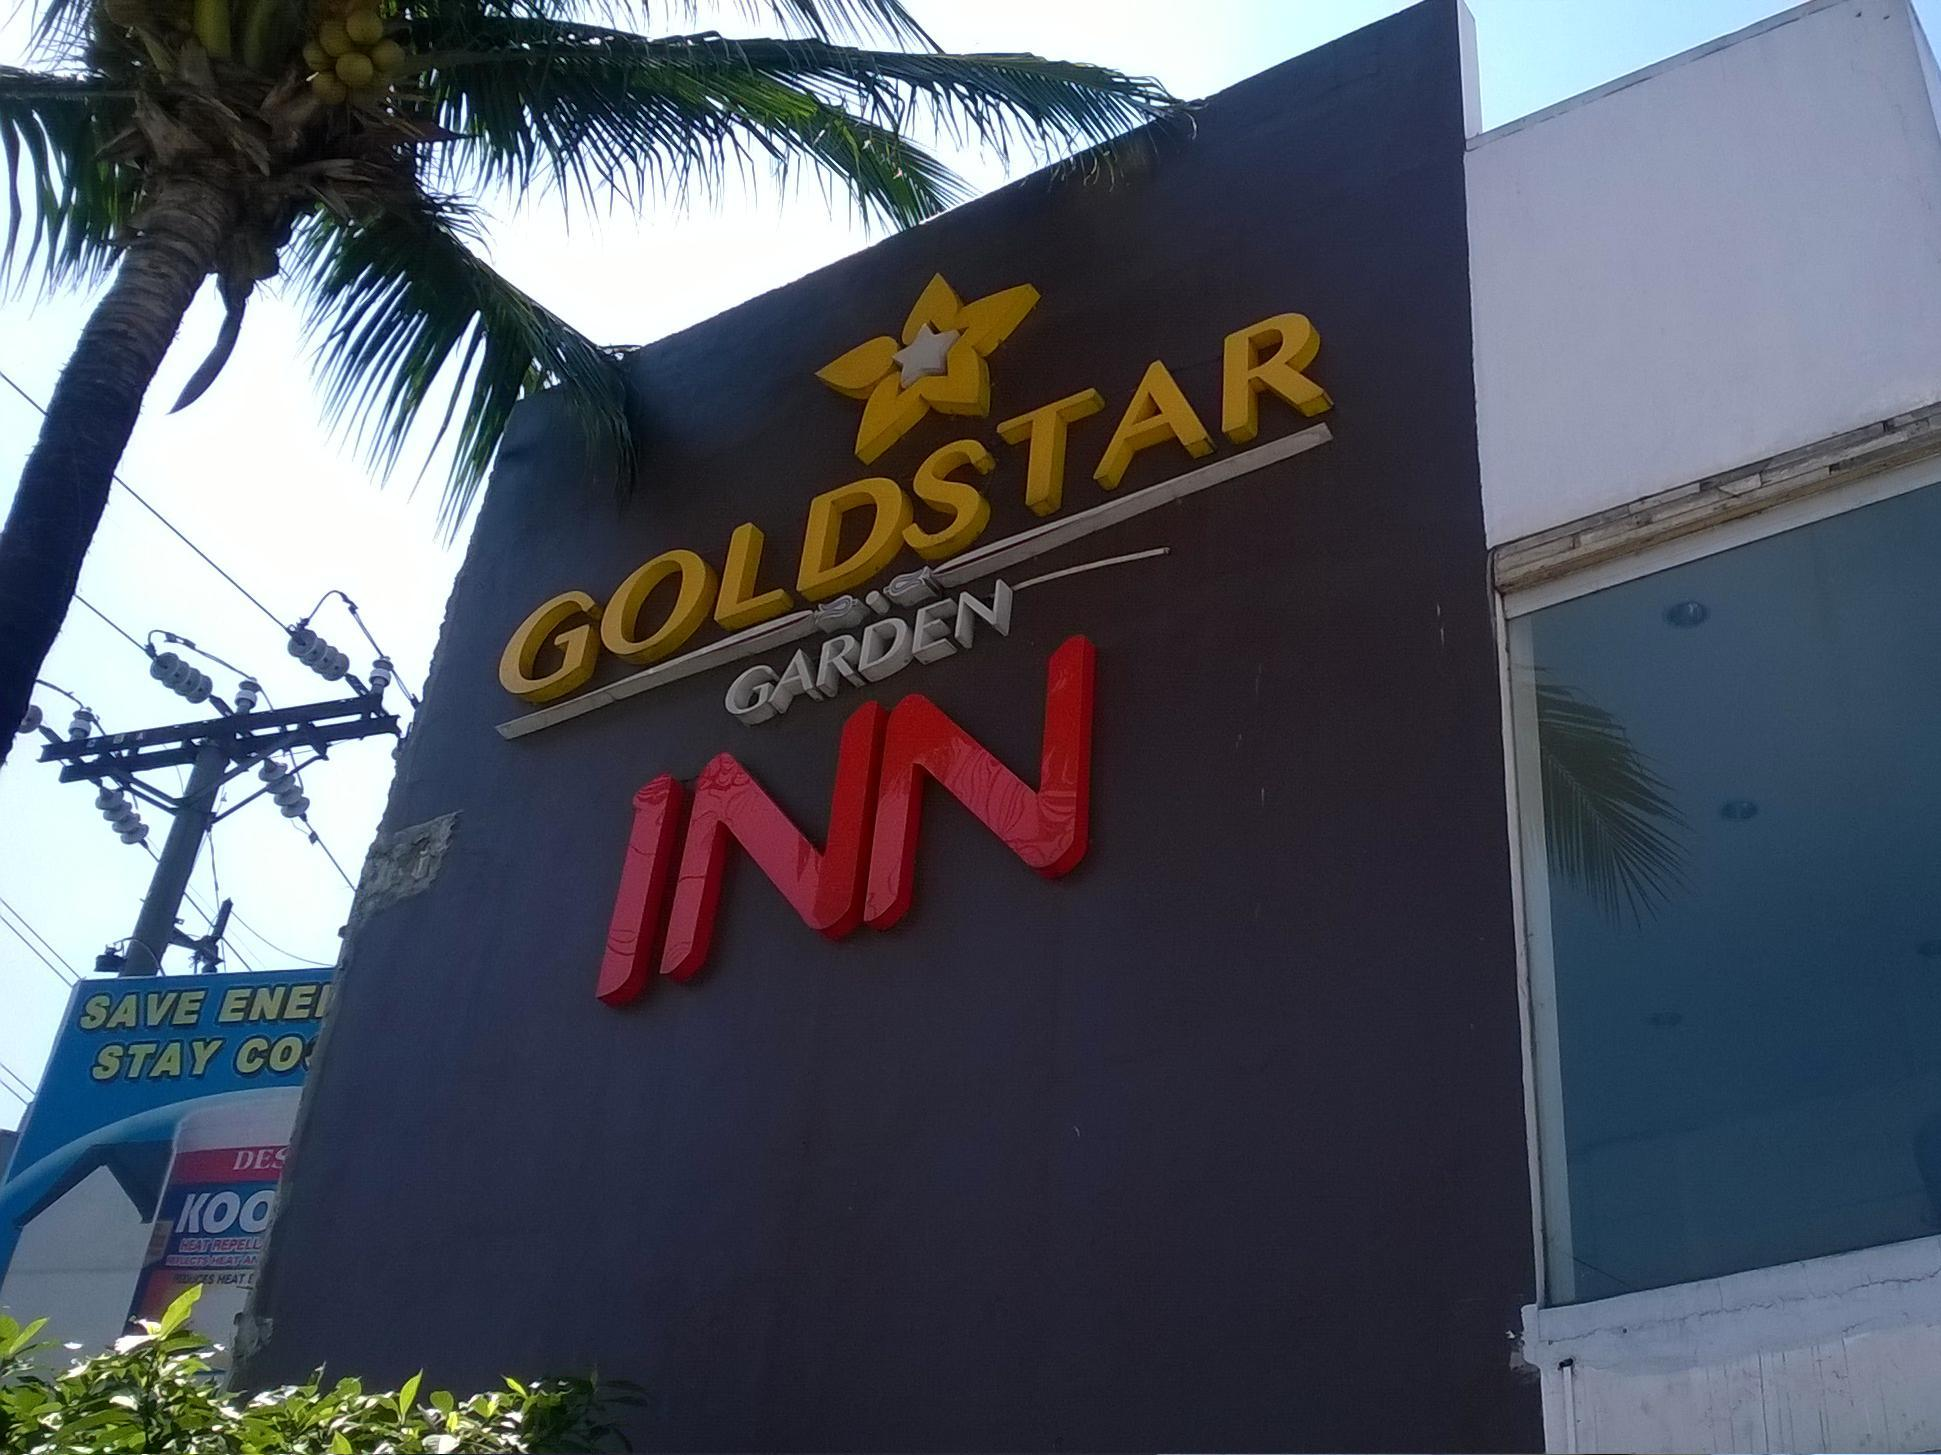 Goldstar Garden Inn - Hotels and Accommodation in Philippines, Asia